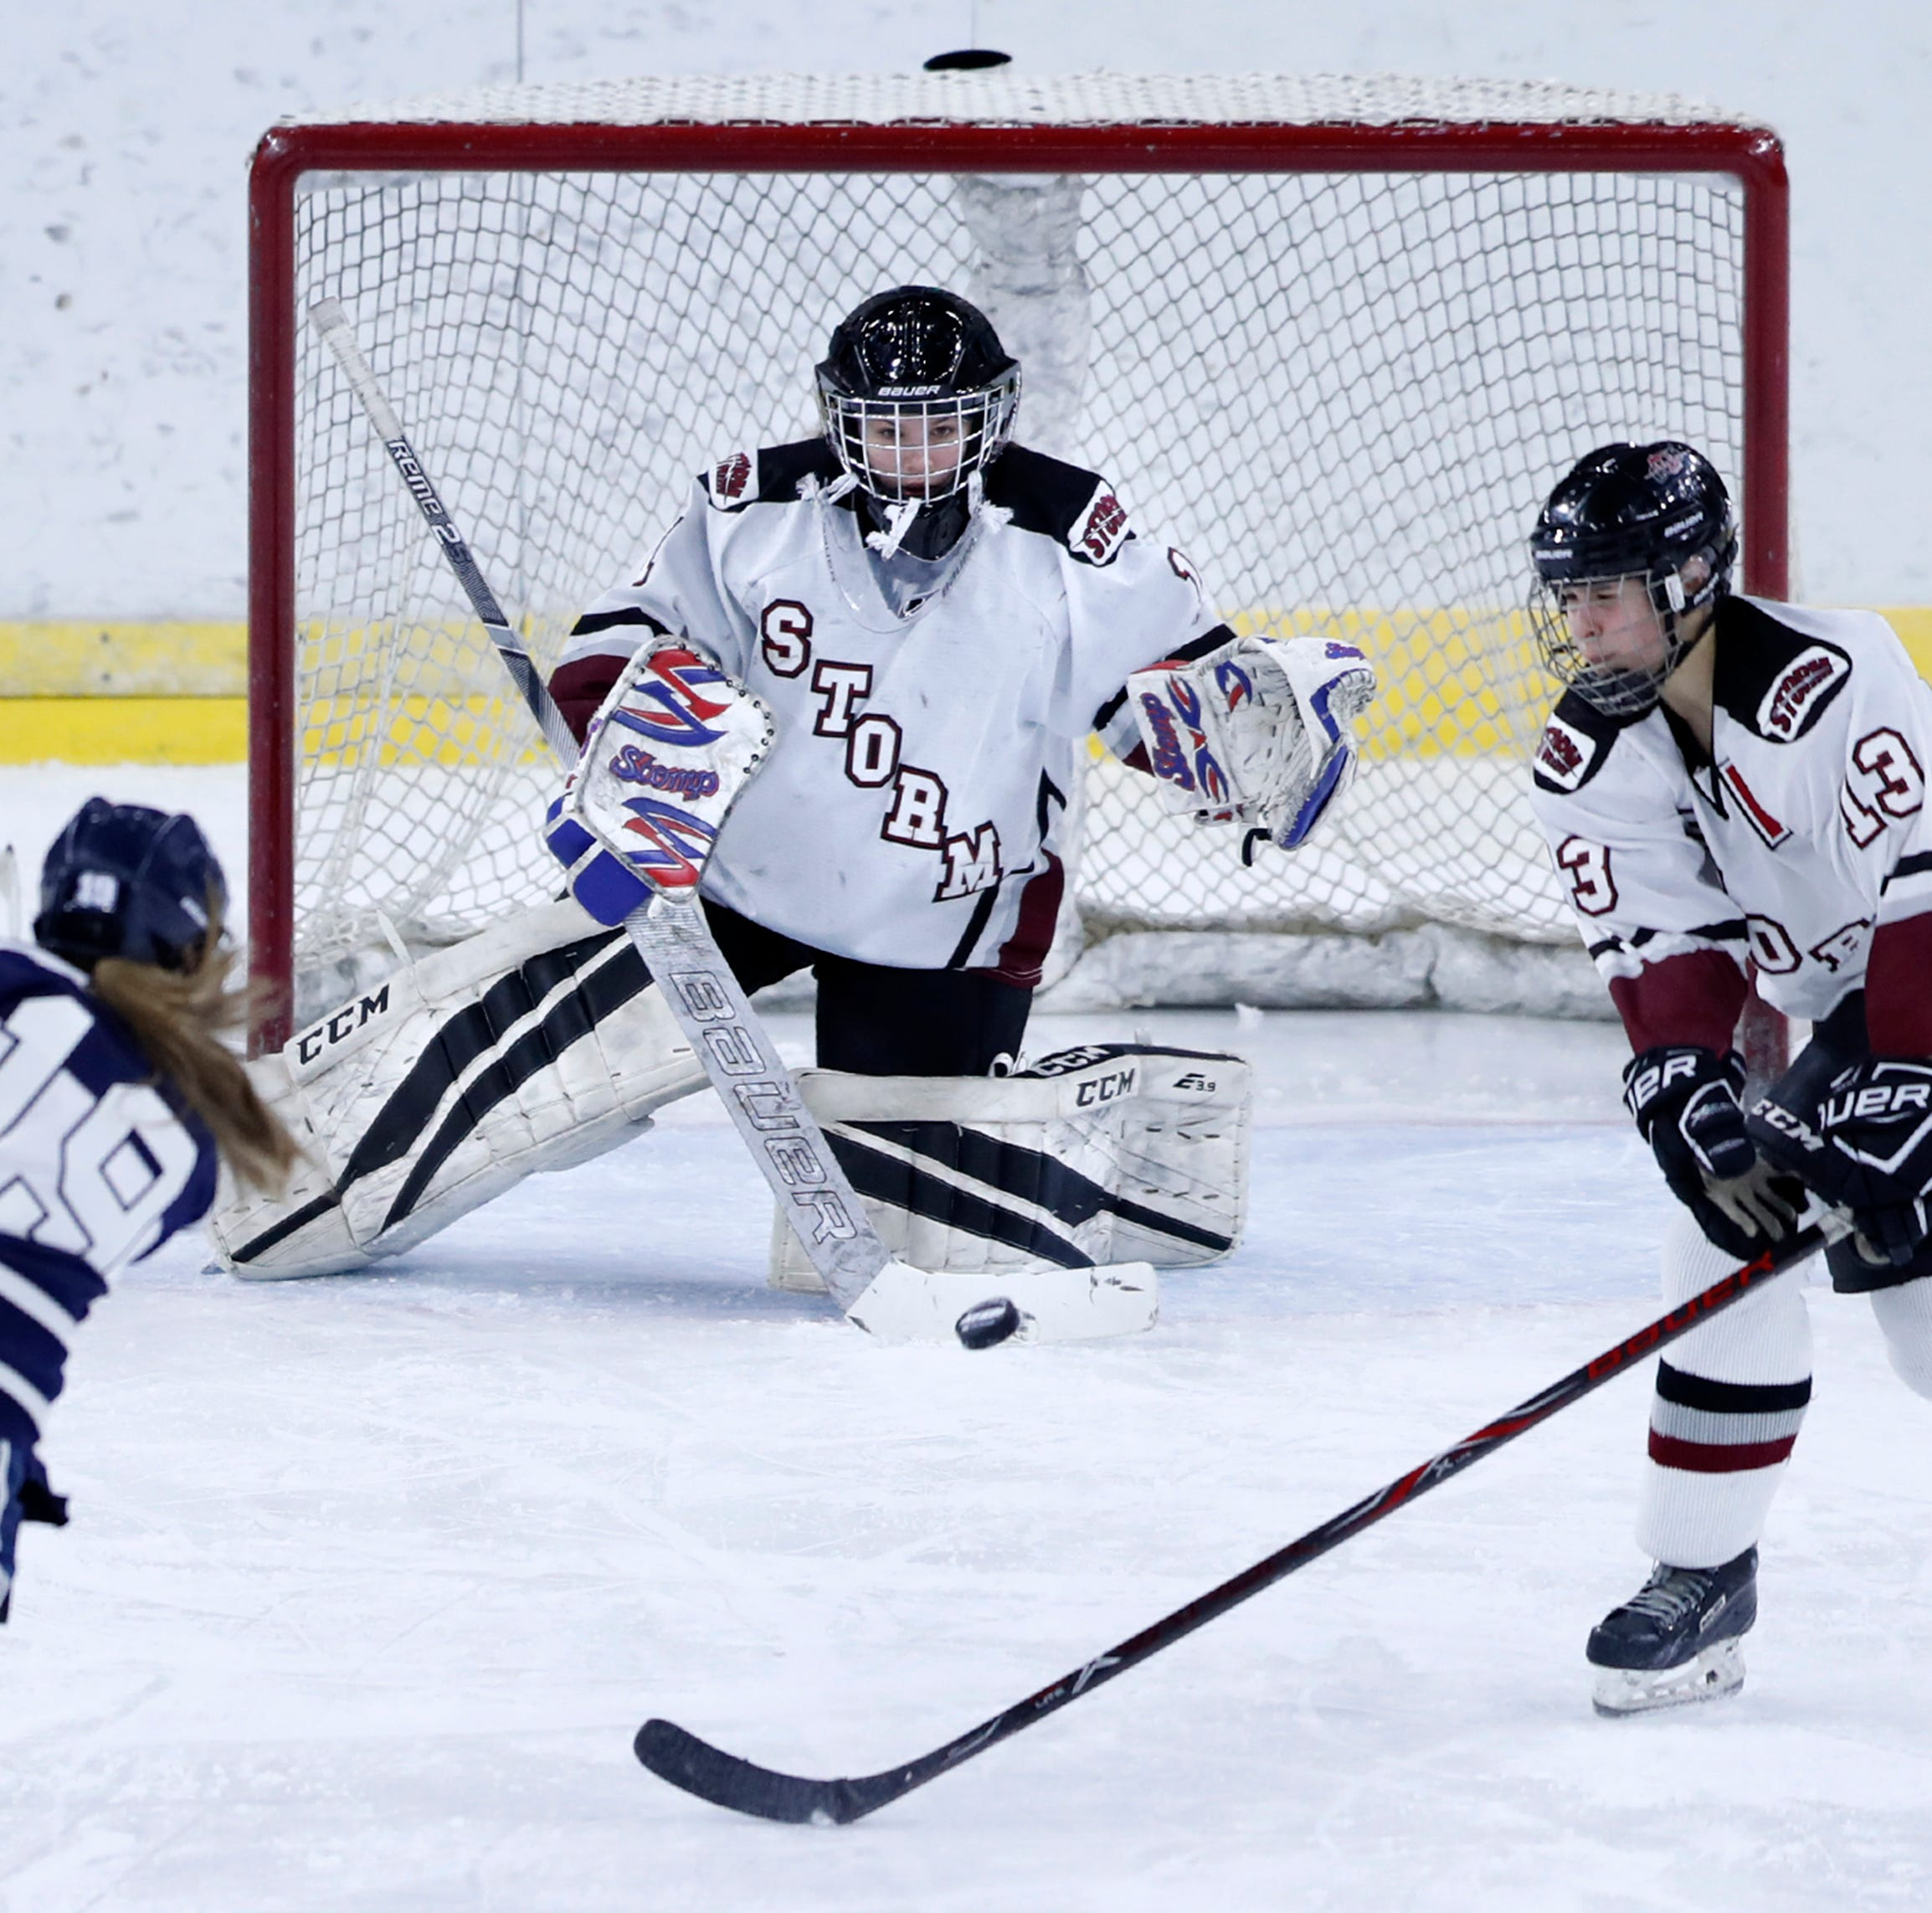 WIAA state hockey: Central Wisconsin Storm falls to Hudson in four-overtime semifinal thriller